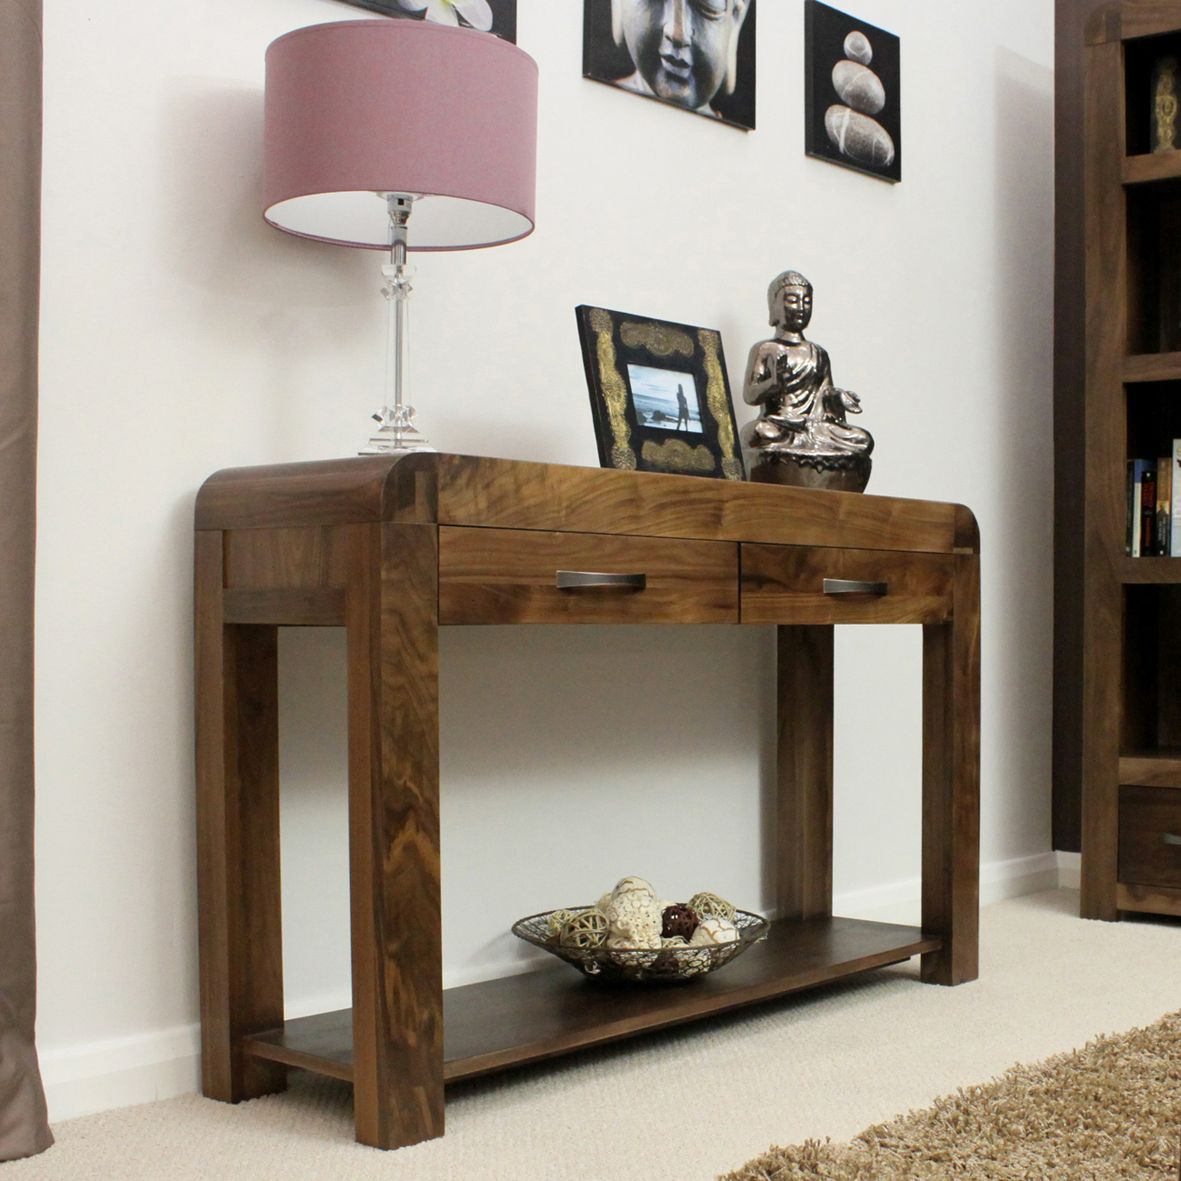 Contemporary hallway furniture  Solid walnut modern hallway console table with two drawers in hall